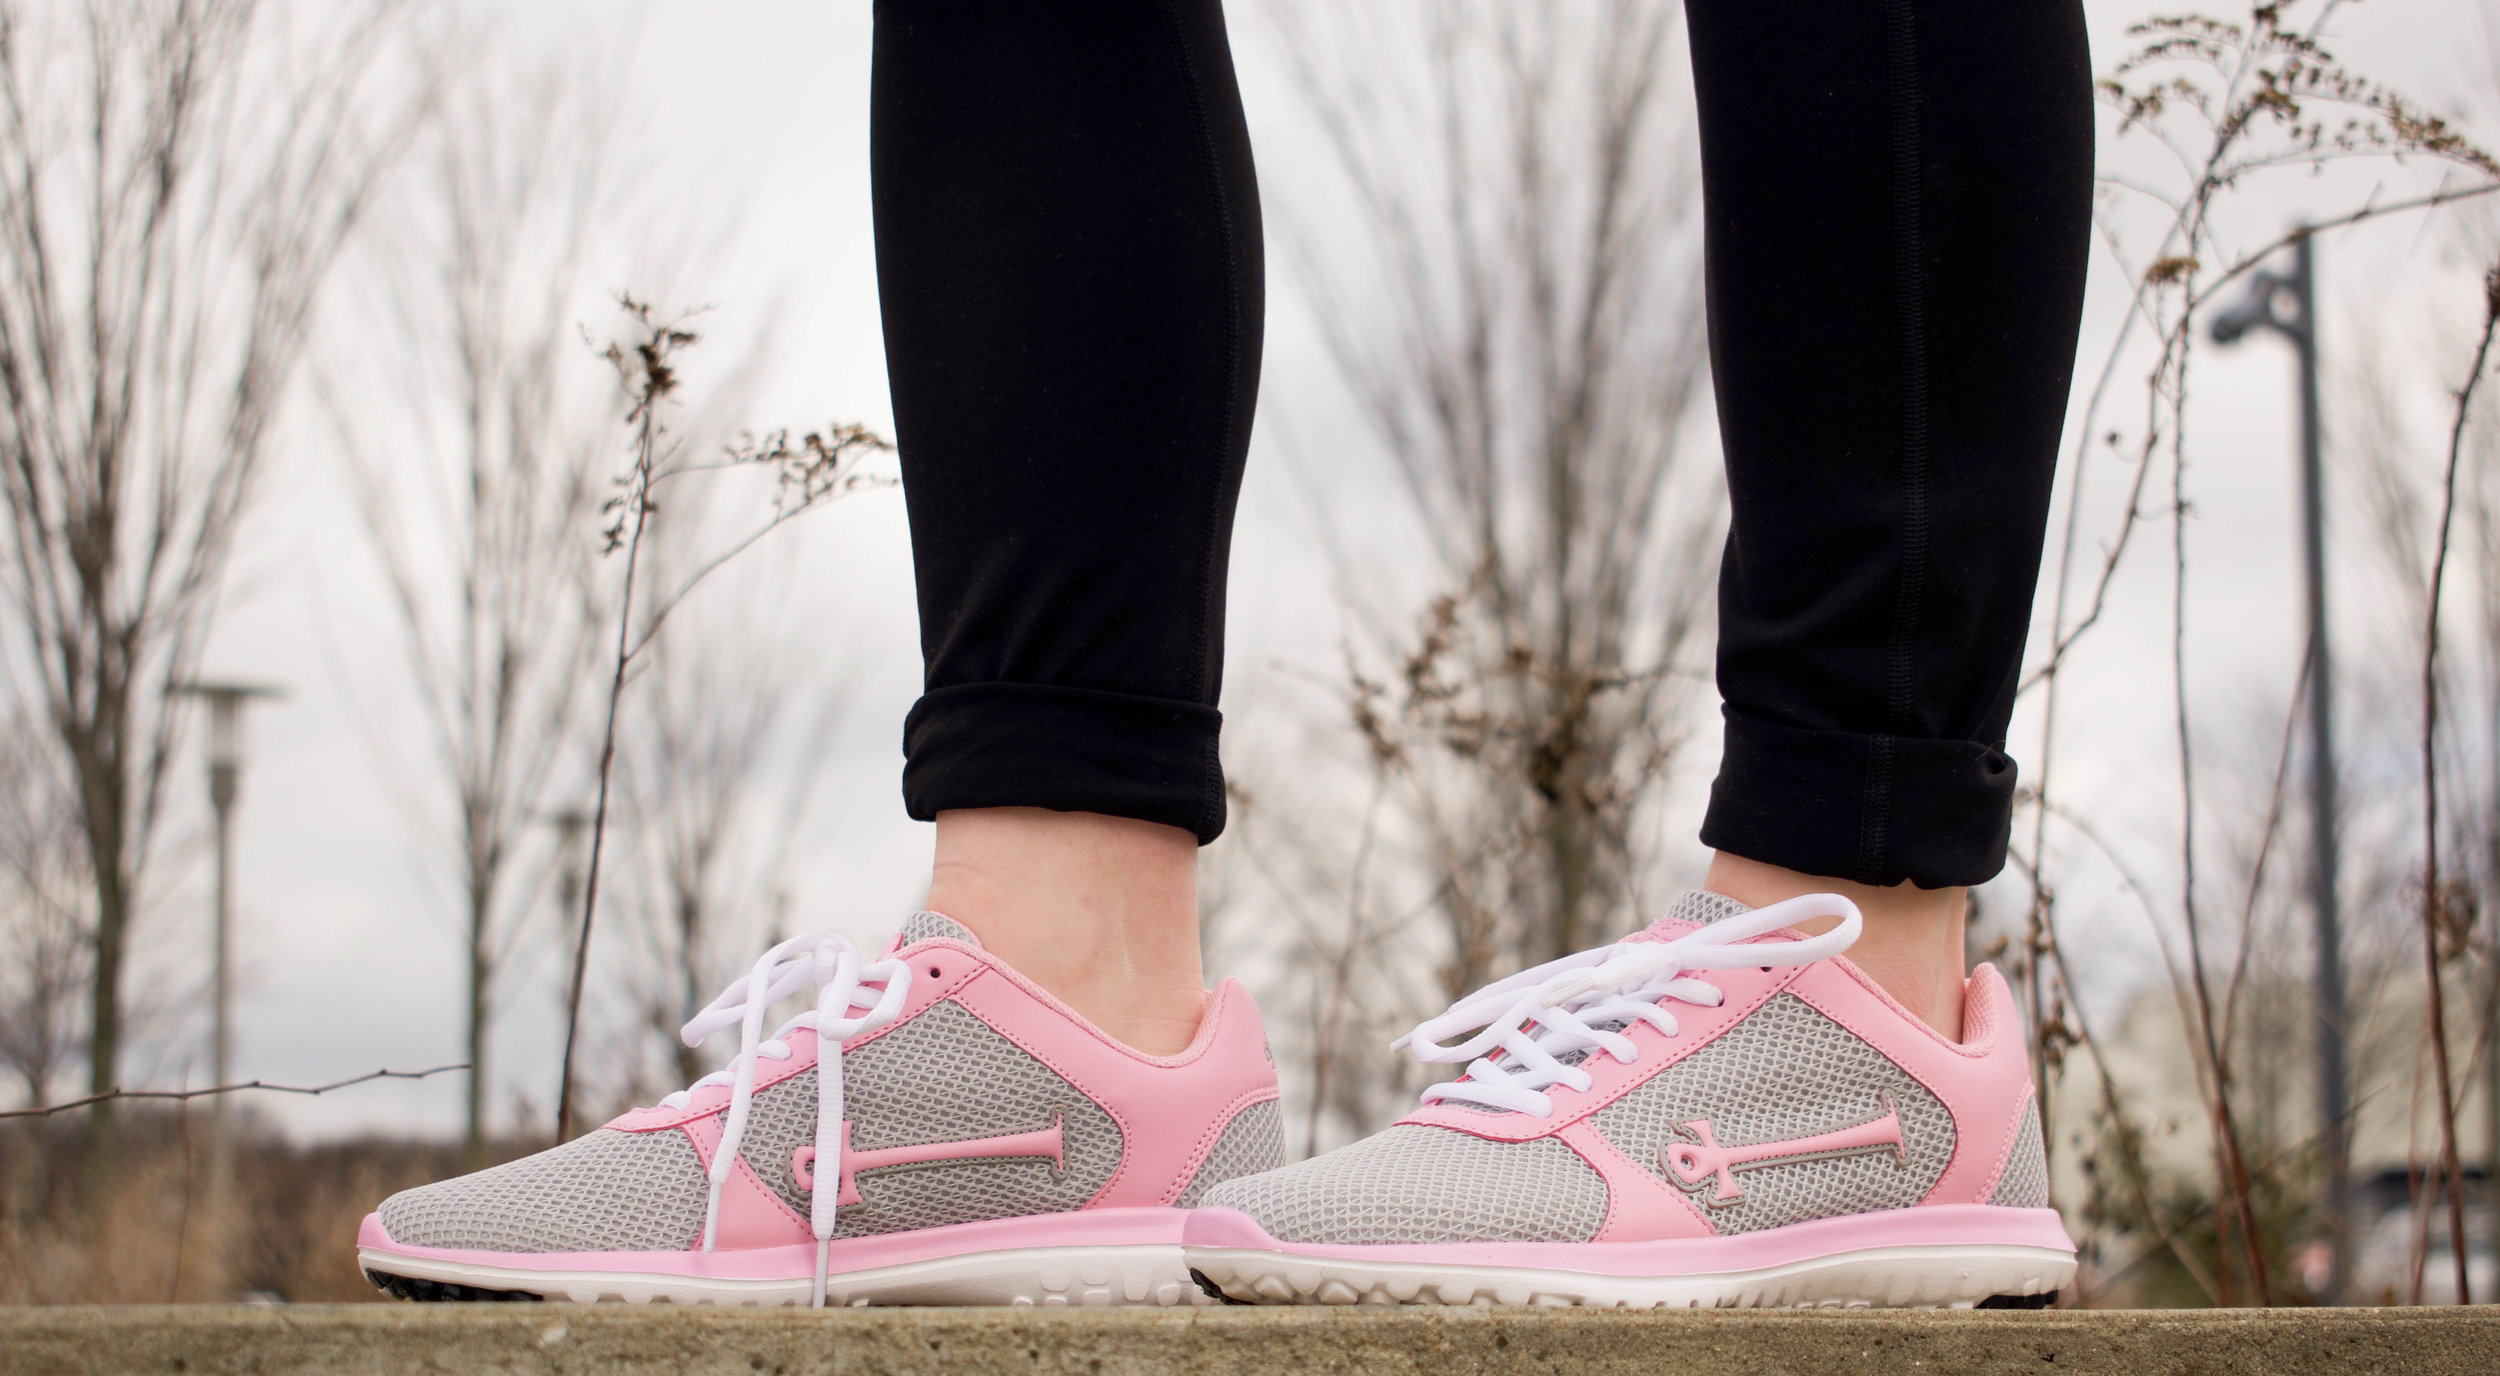 sneakers that give back